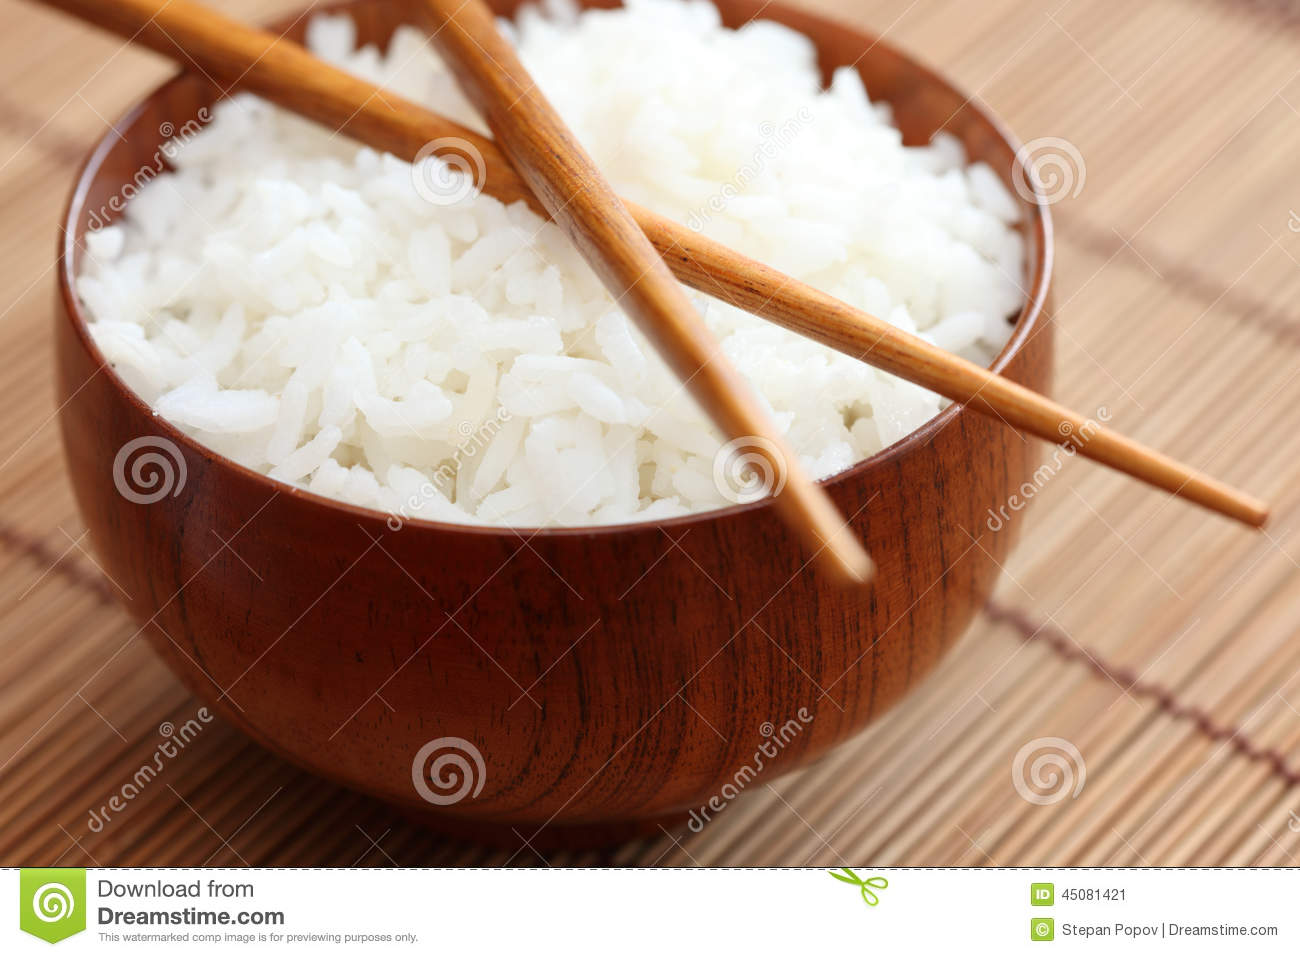 Bowl Of Rice With Chopsticks Stock Image - Image: 45081421